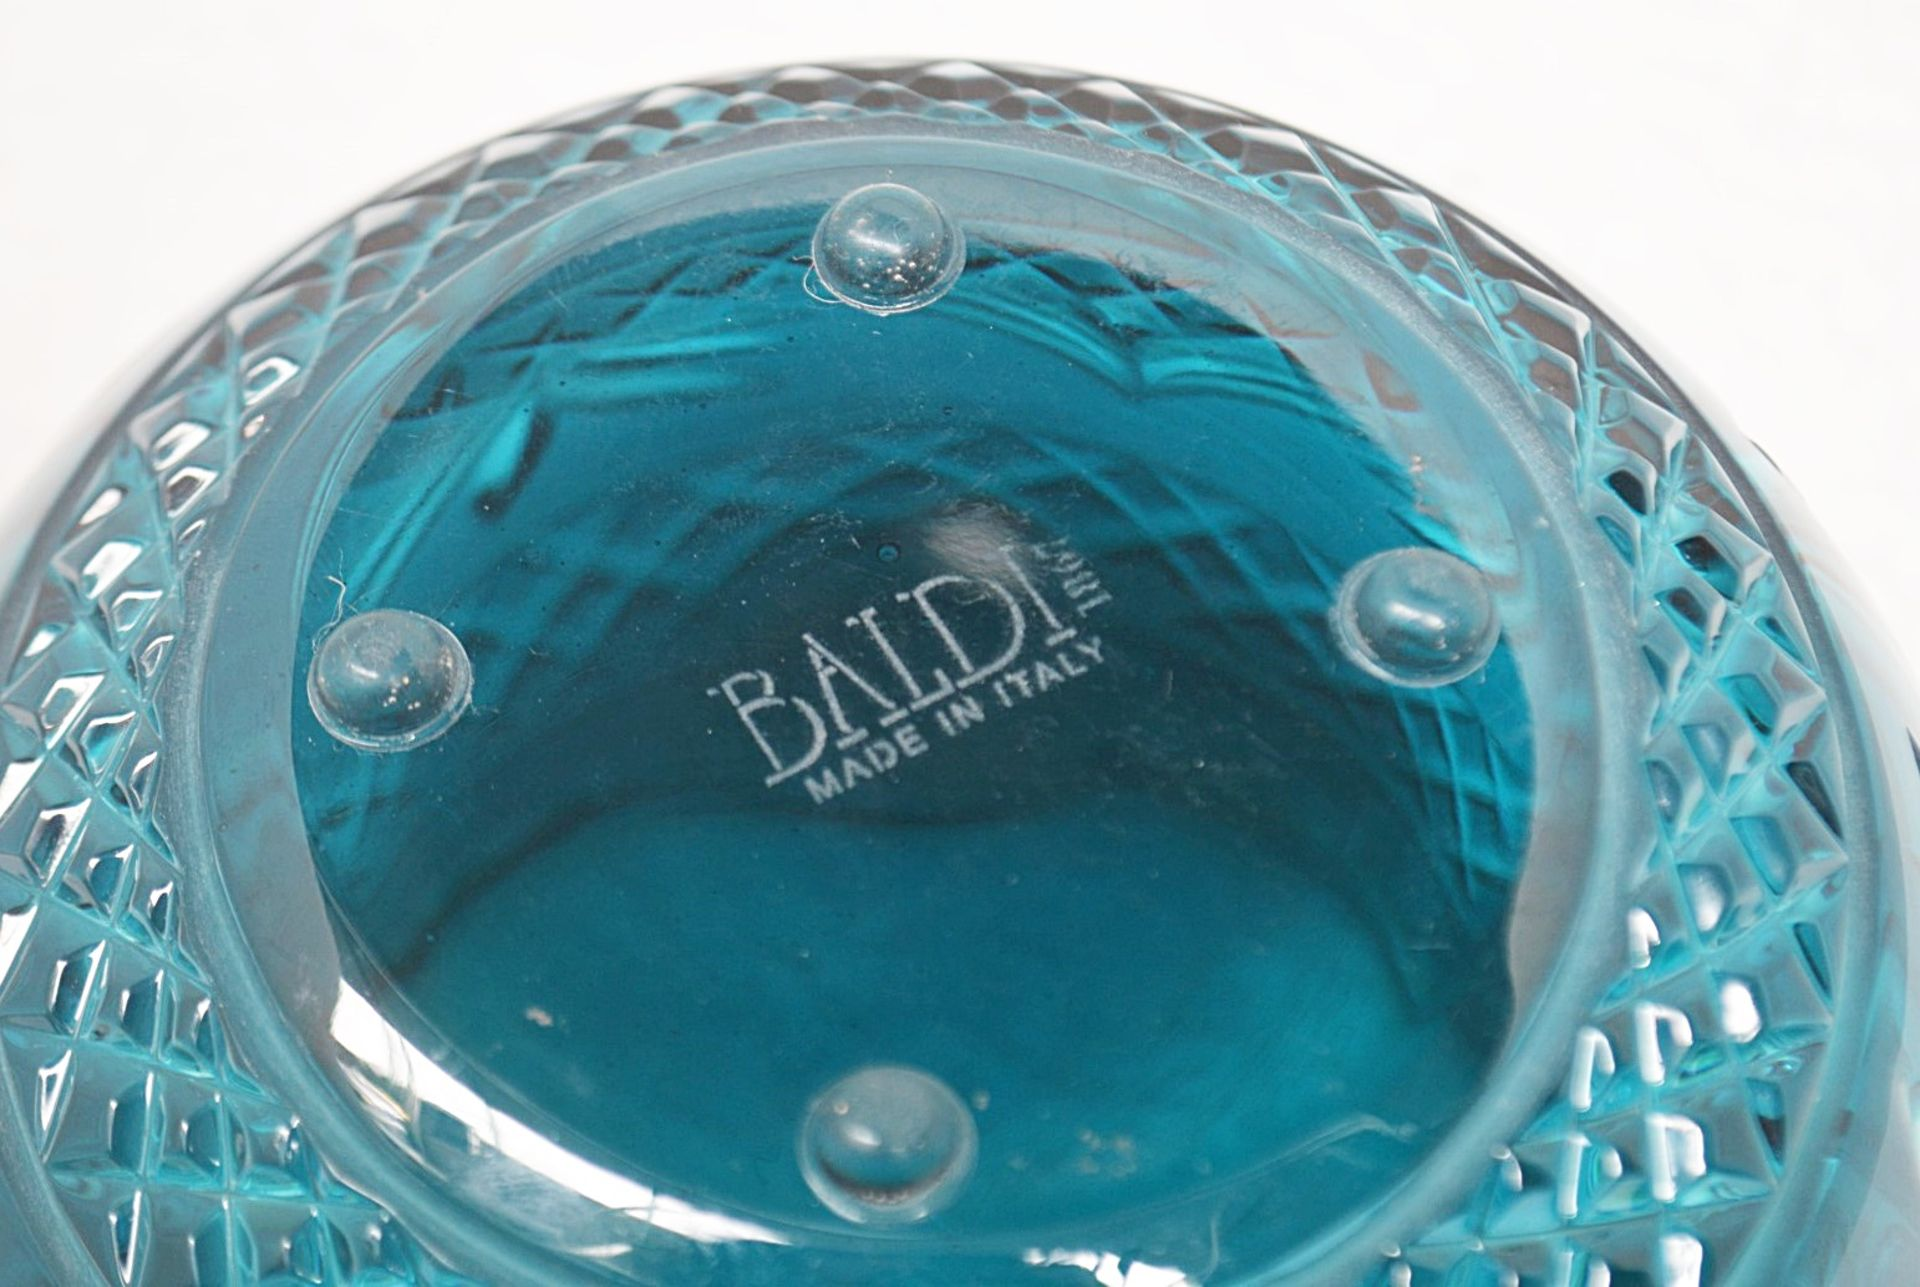 1 x BALDI 'Home Jewels' Italian Hand-crafted Artisan Crystal Coccinella Box In Turquoise - RRP £900 - Image 5 of 5